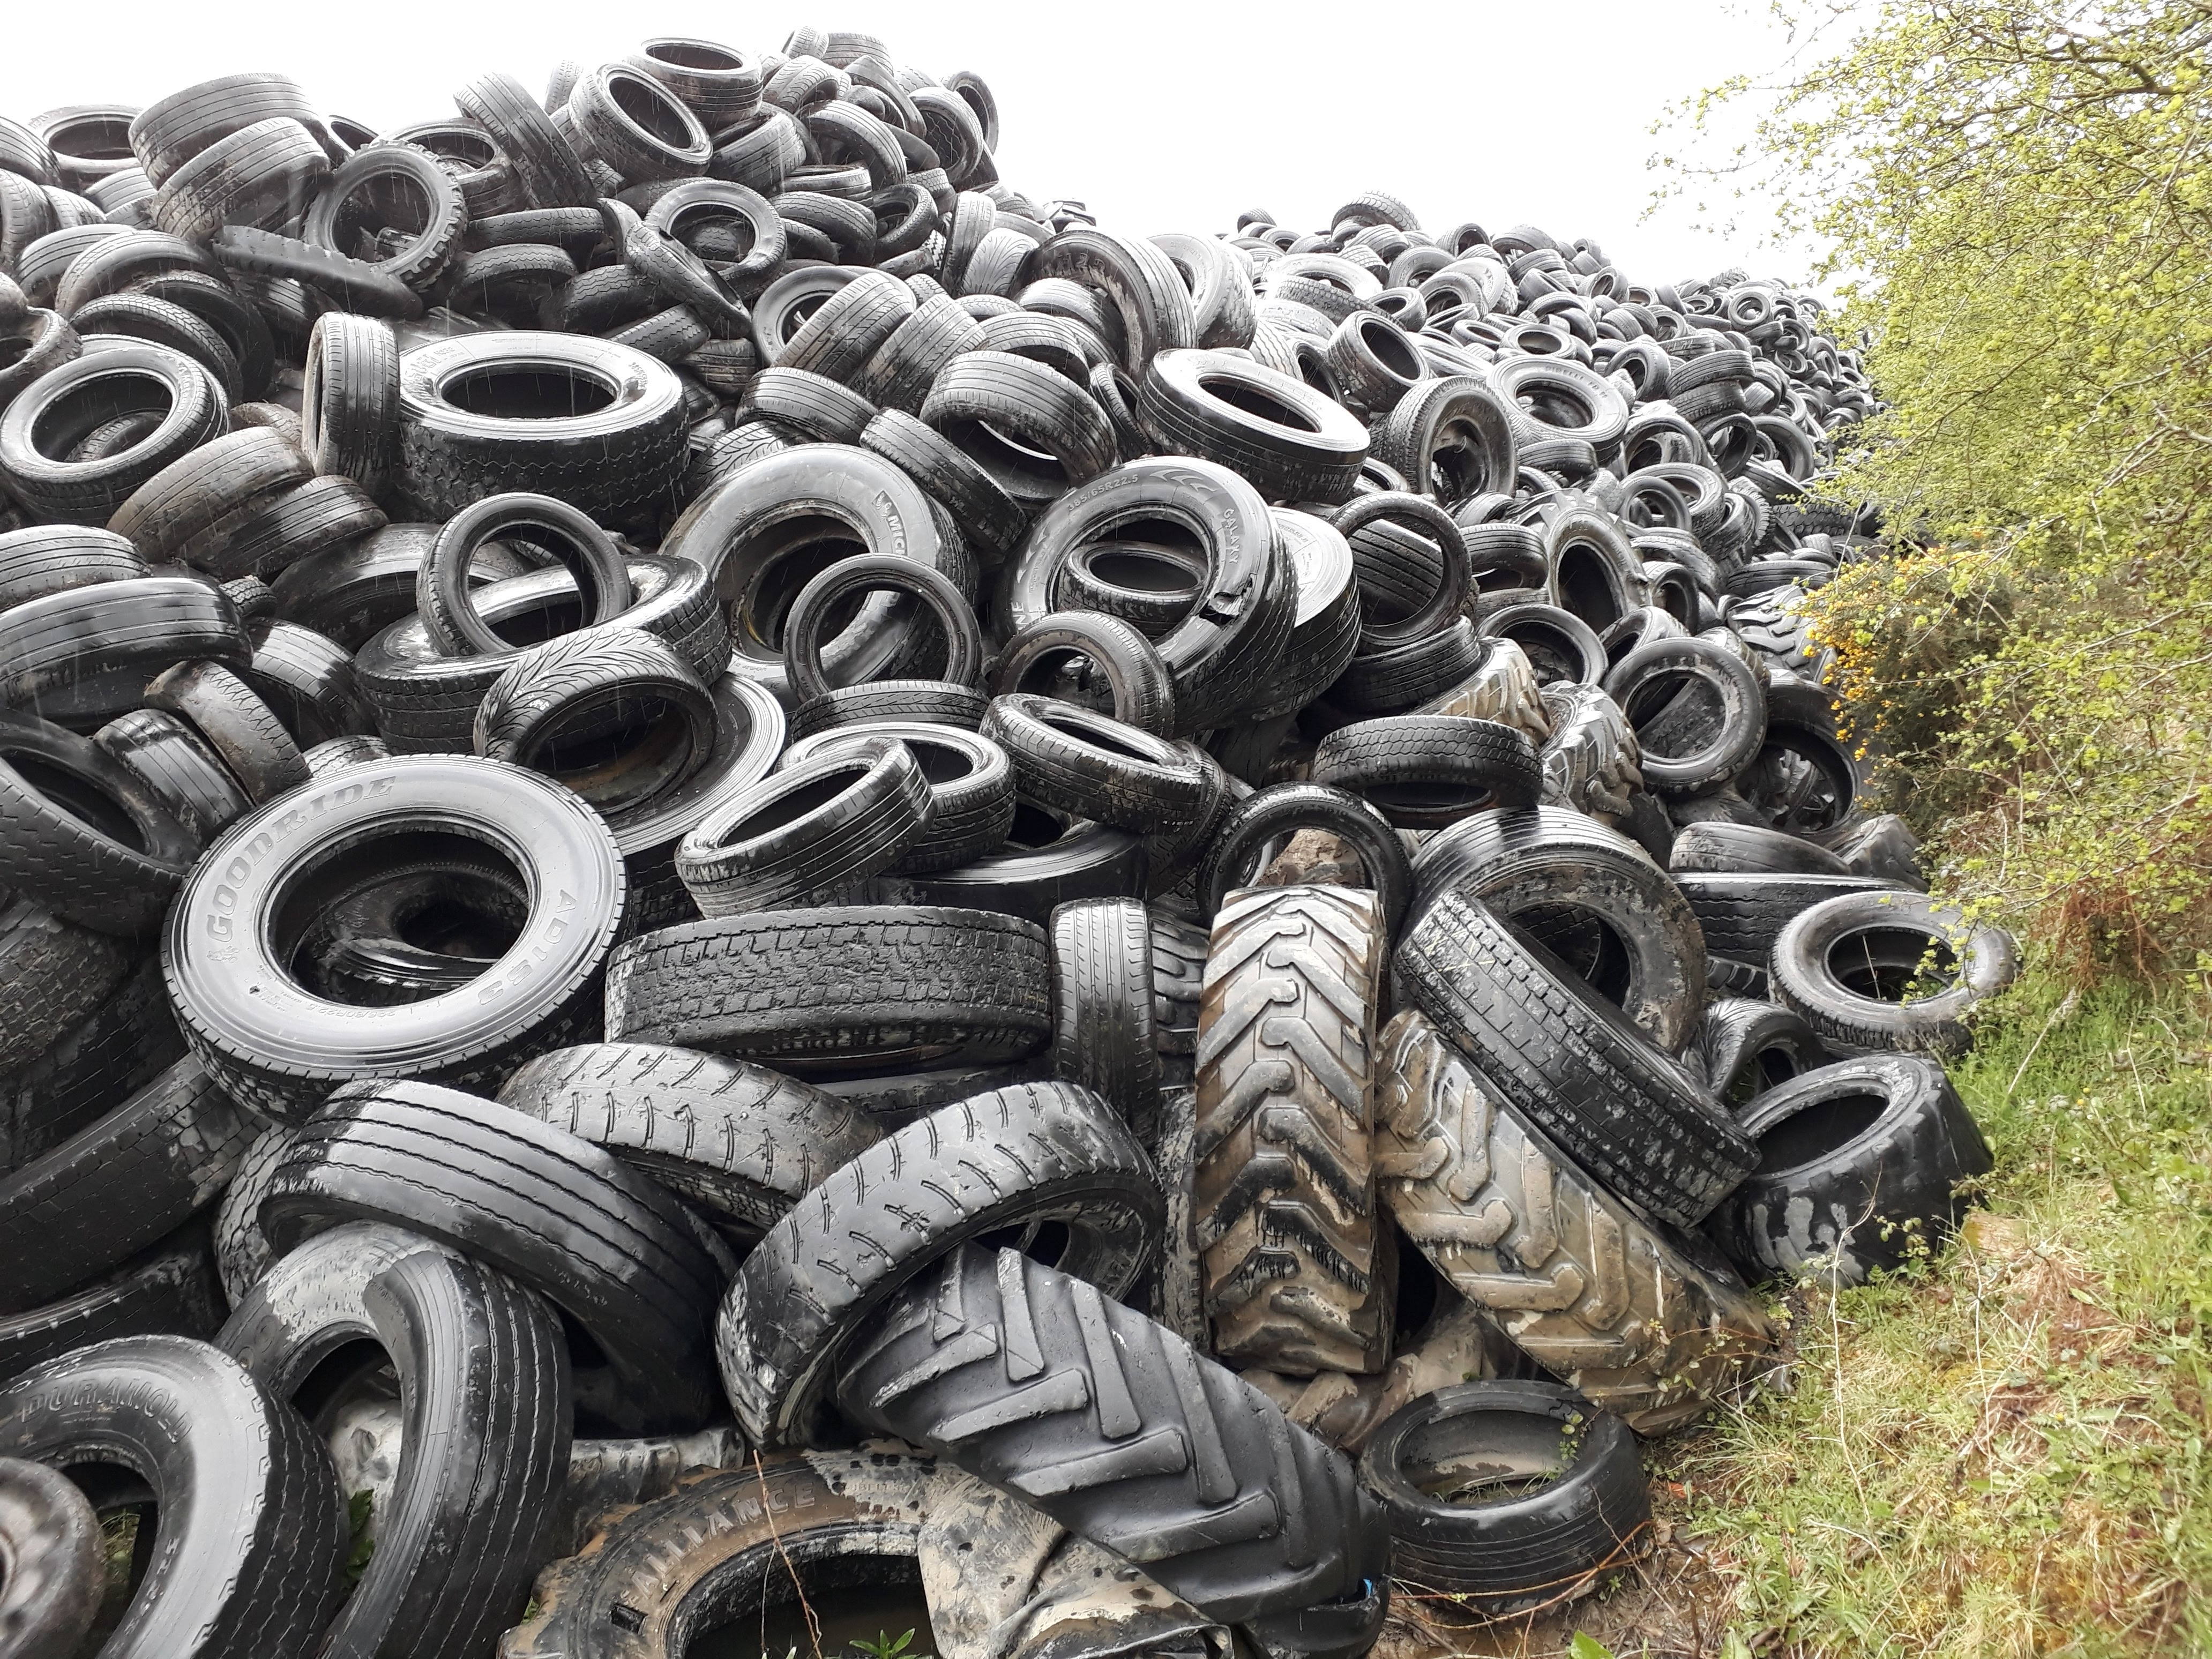 How can I safely dispose of tyres, plastics and hazardous